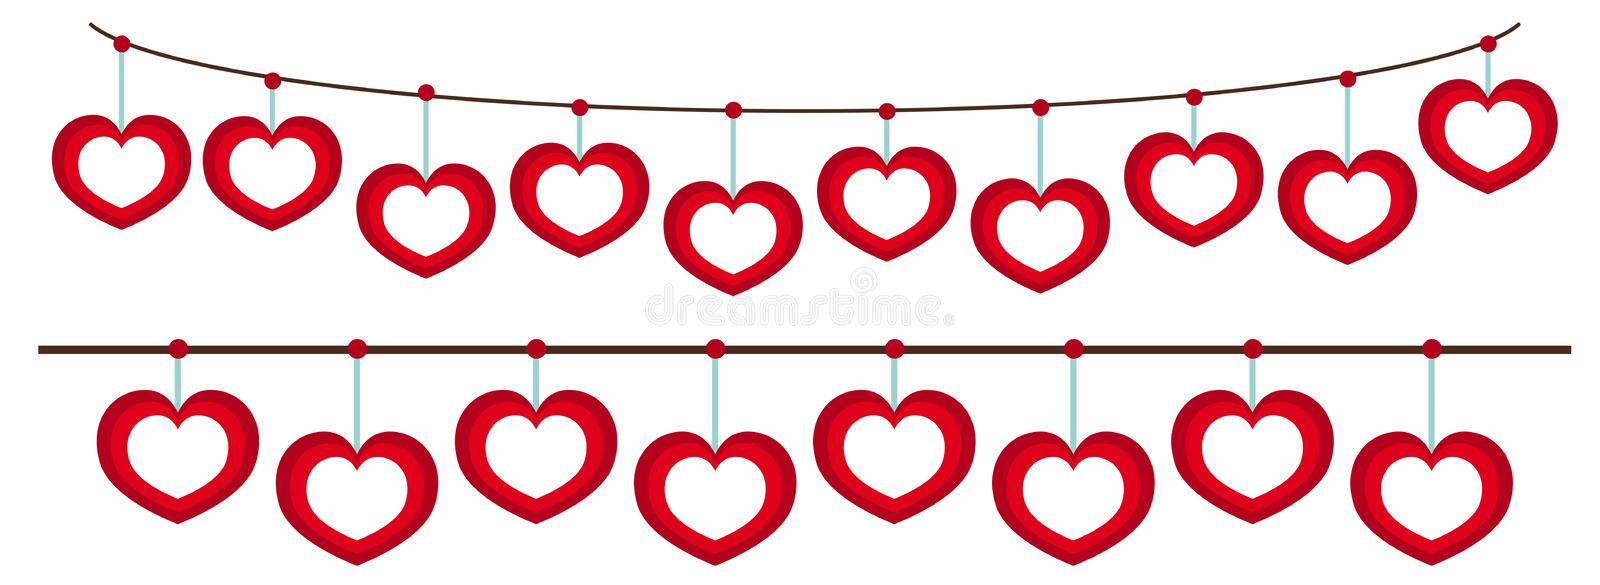 Heart Frames Hanging On String Stock Vector - Illustration of ...